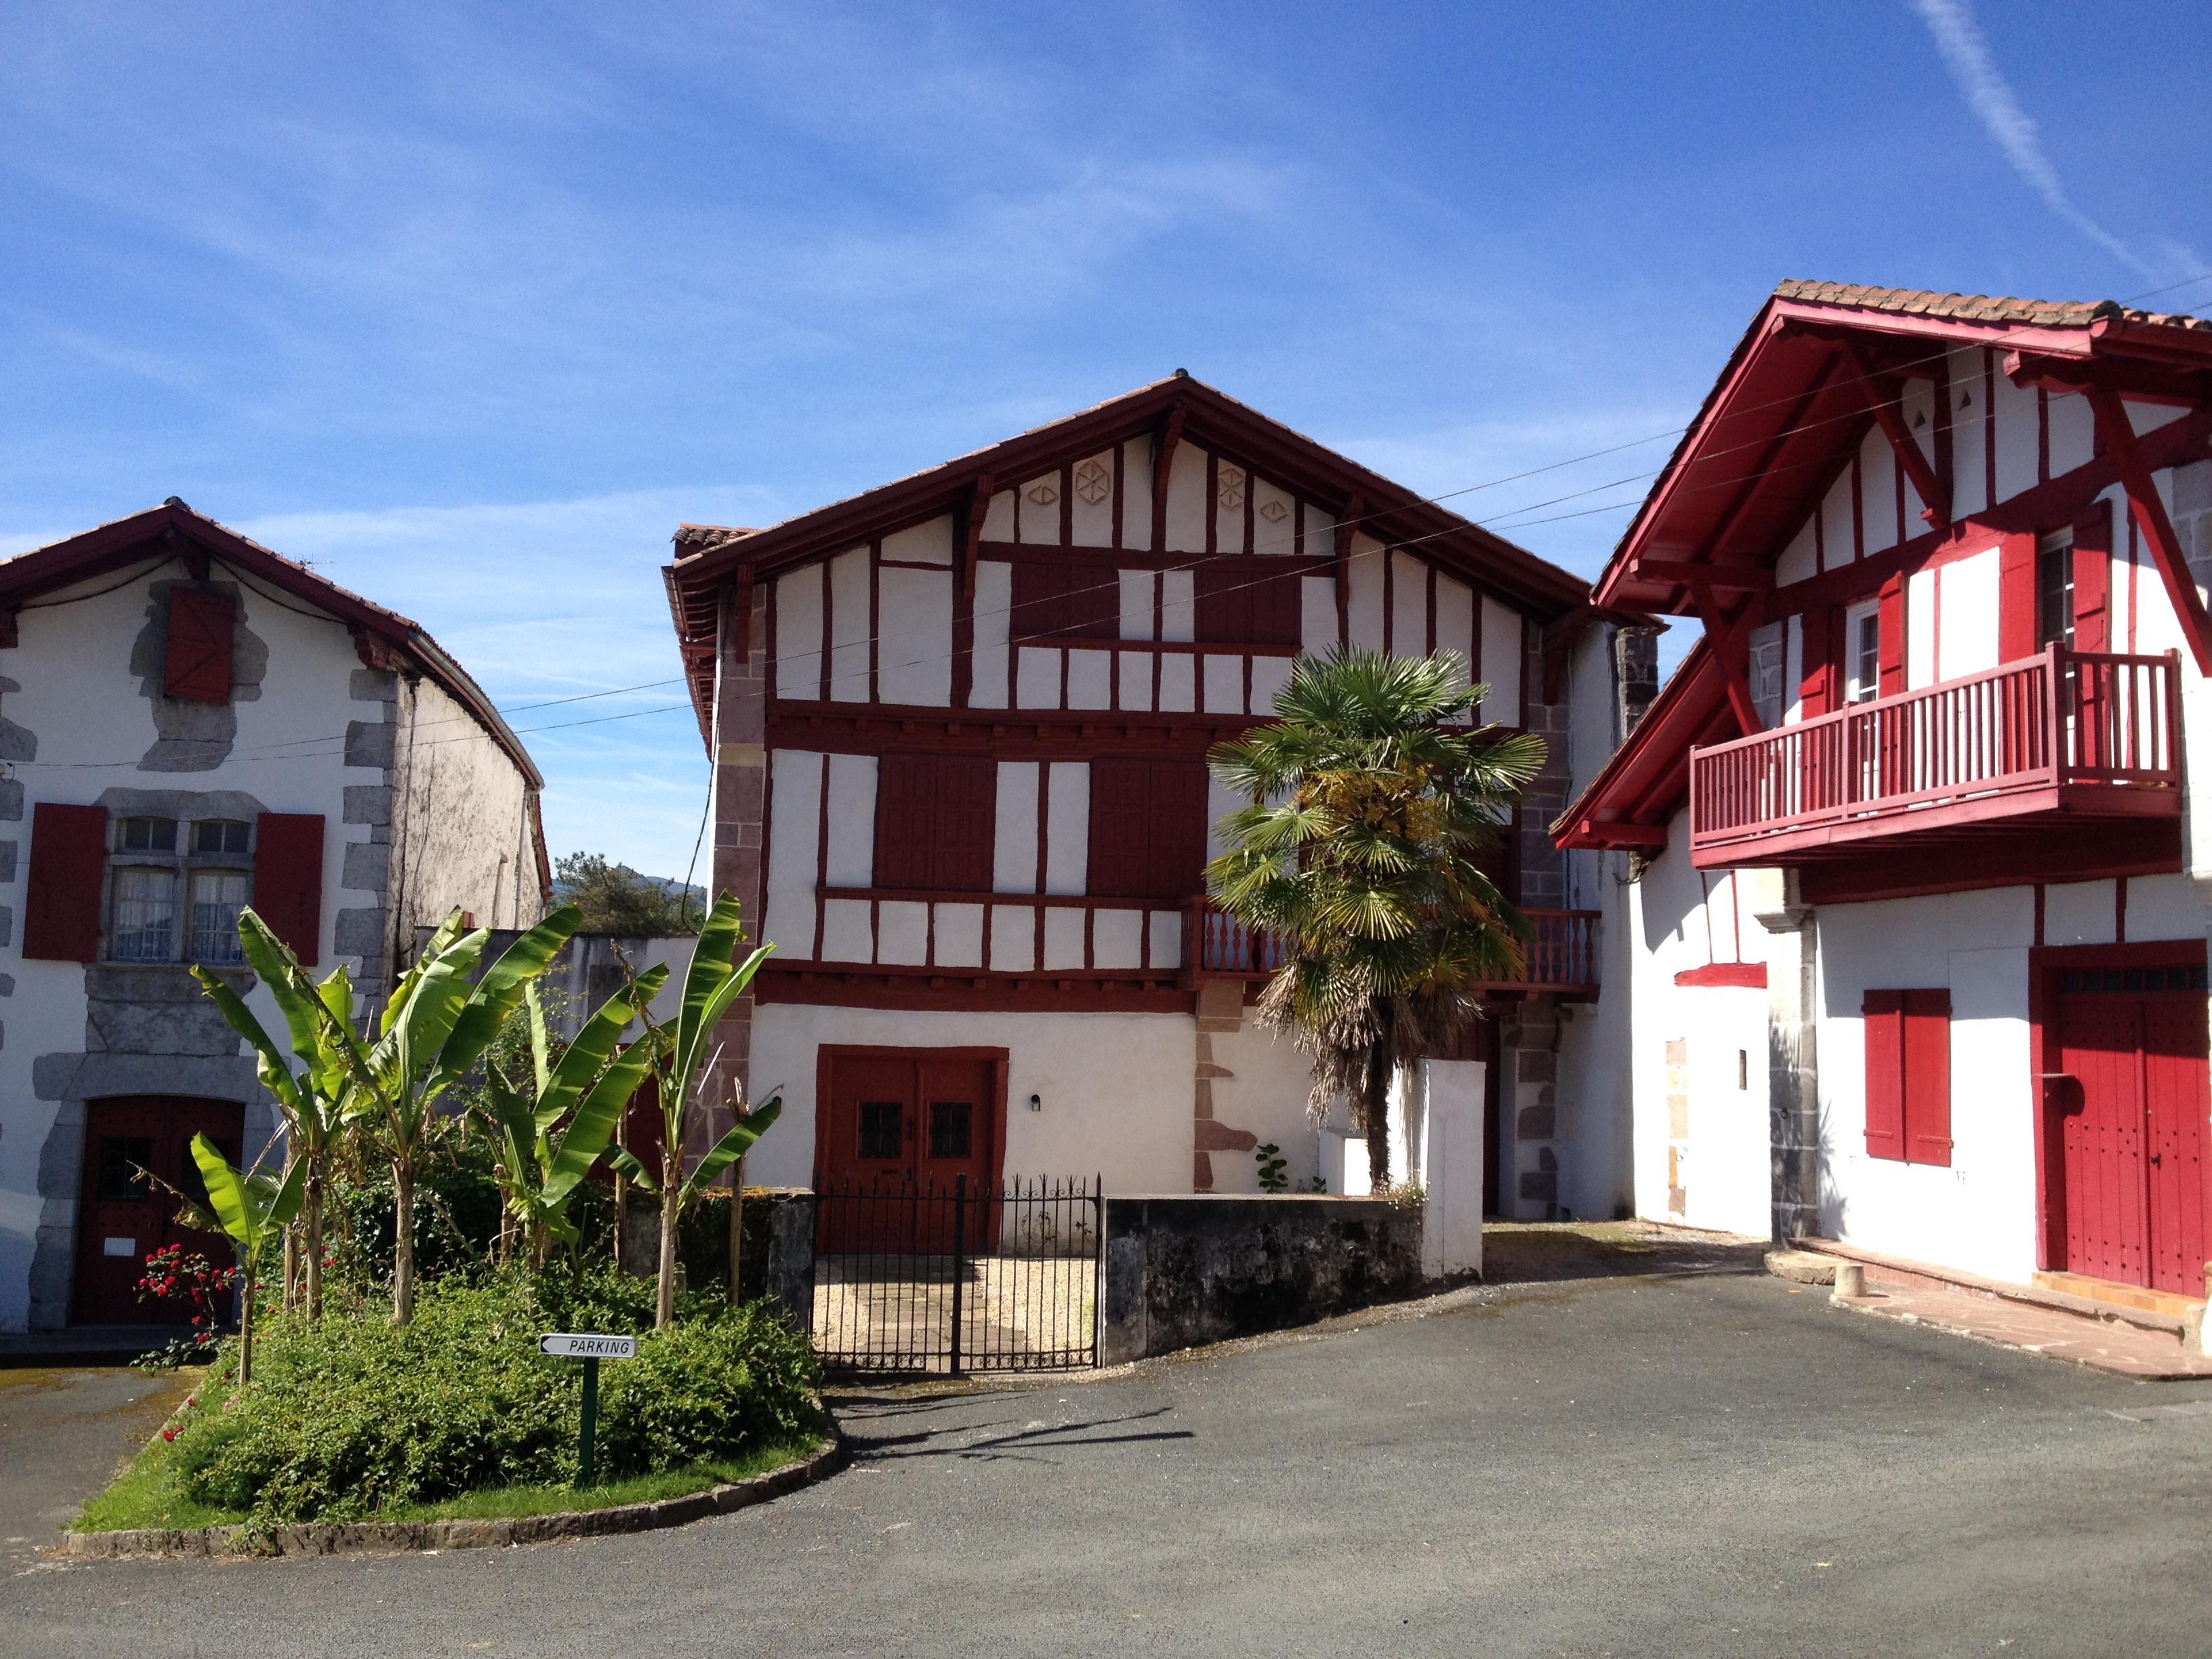 Basque houses